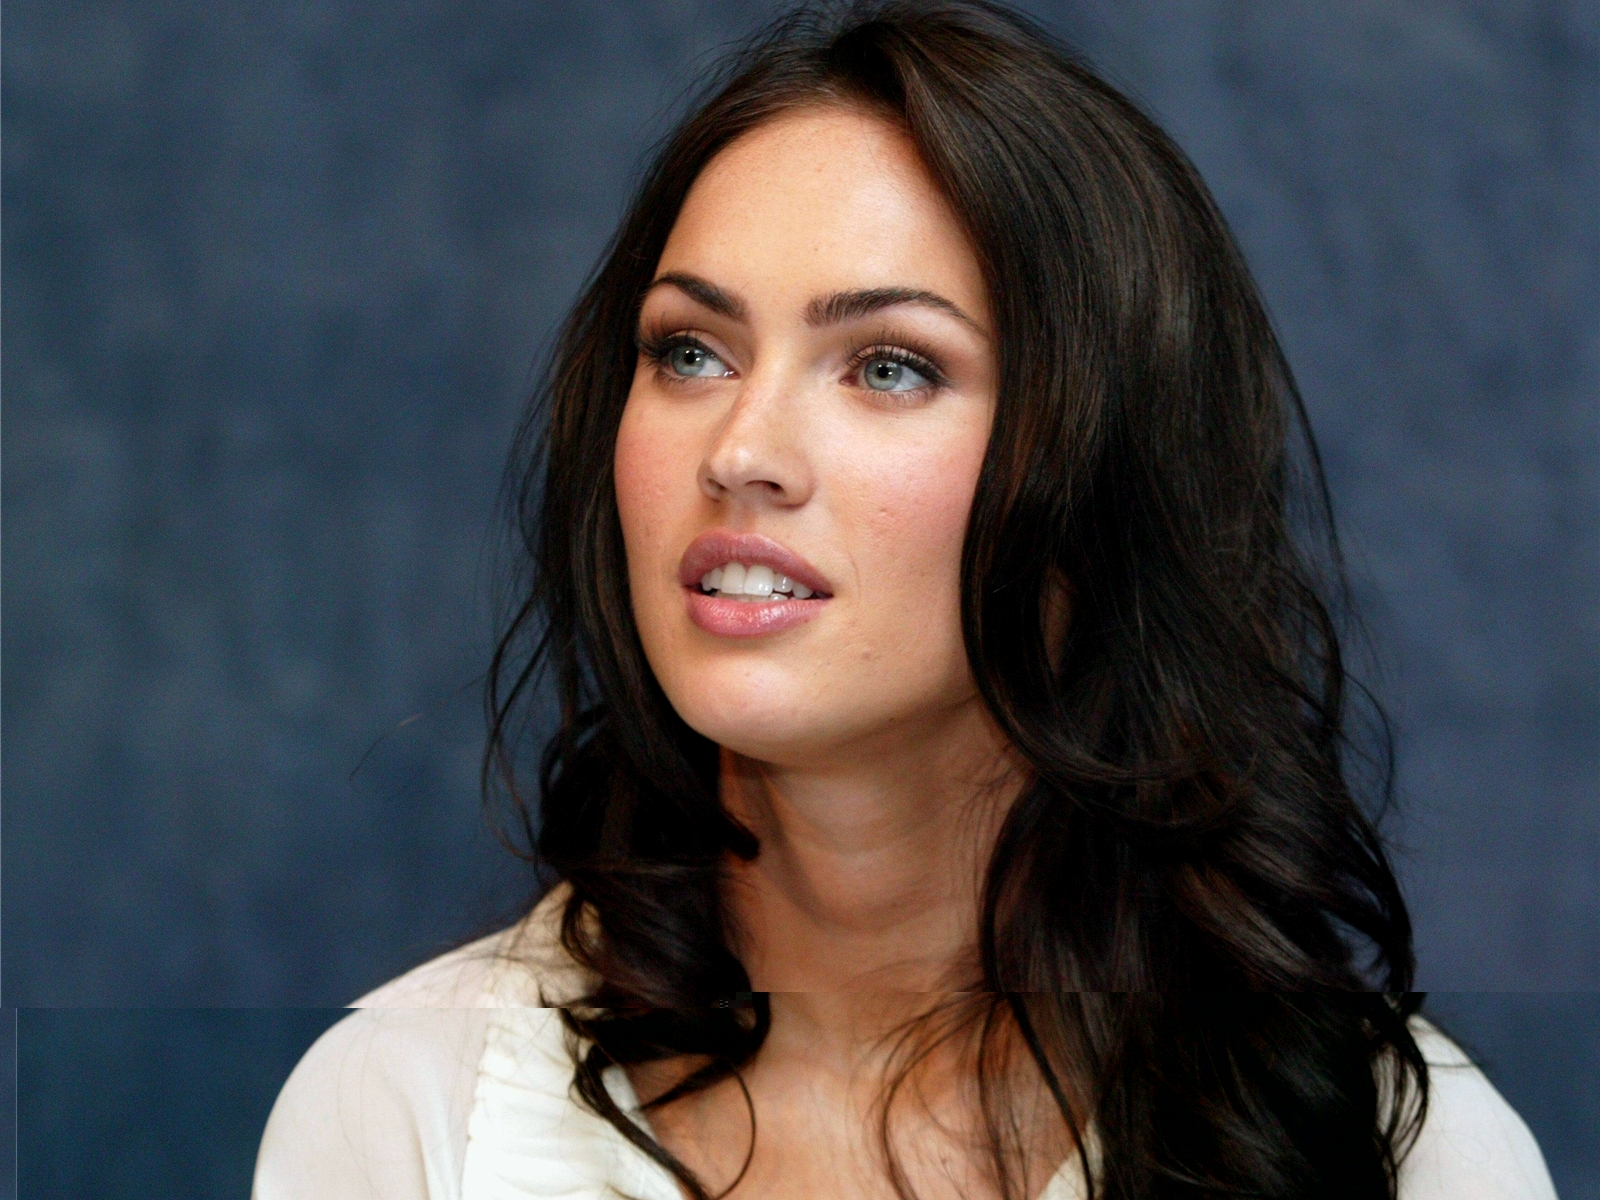 megan fox part 1- hair and makeup | lookqueamo